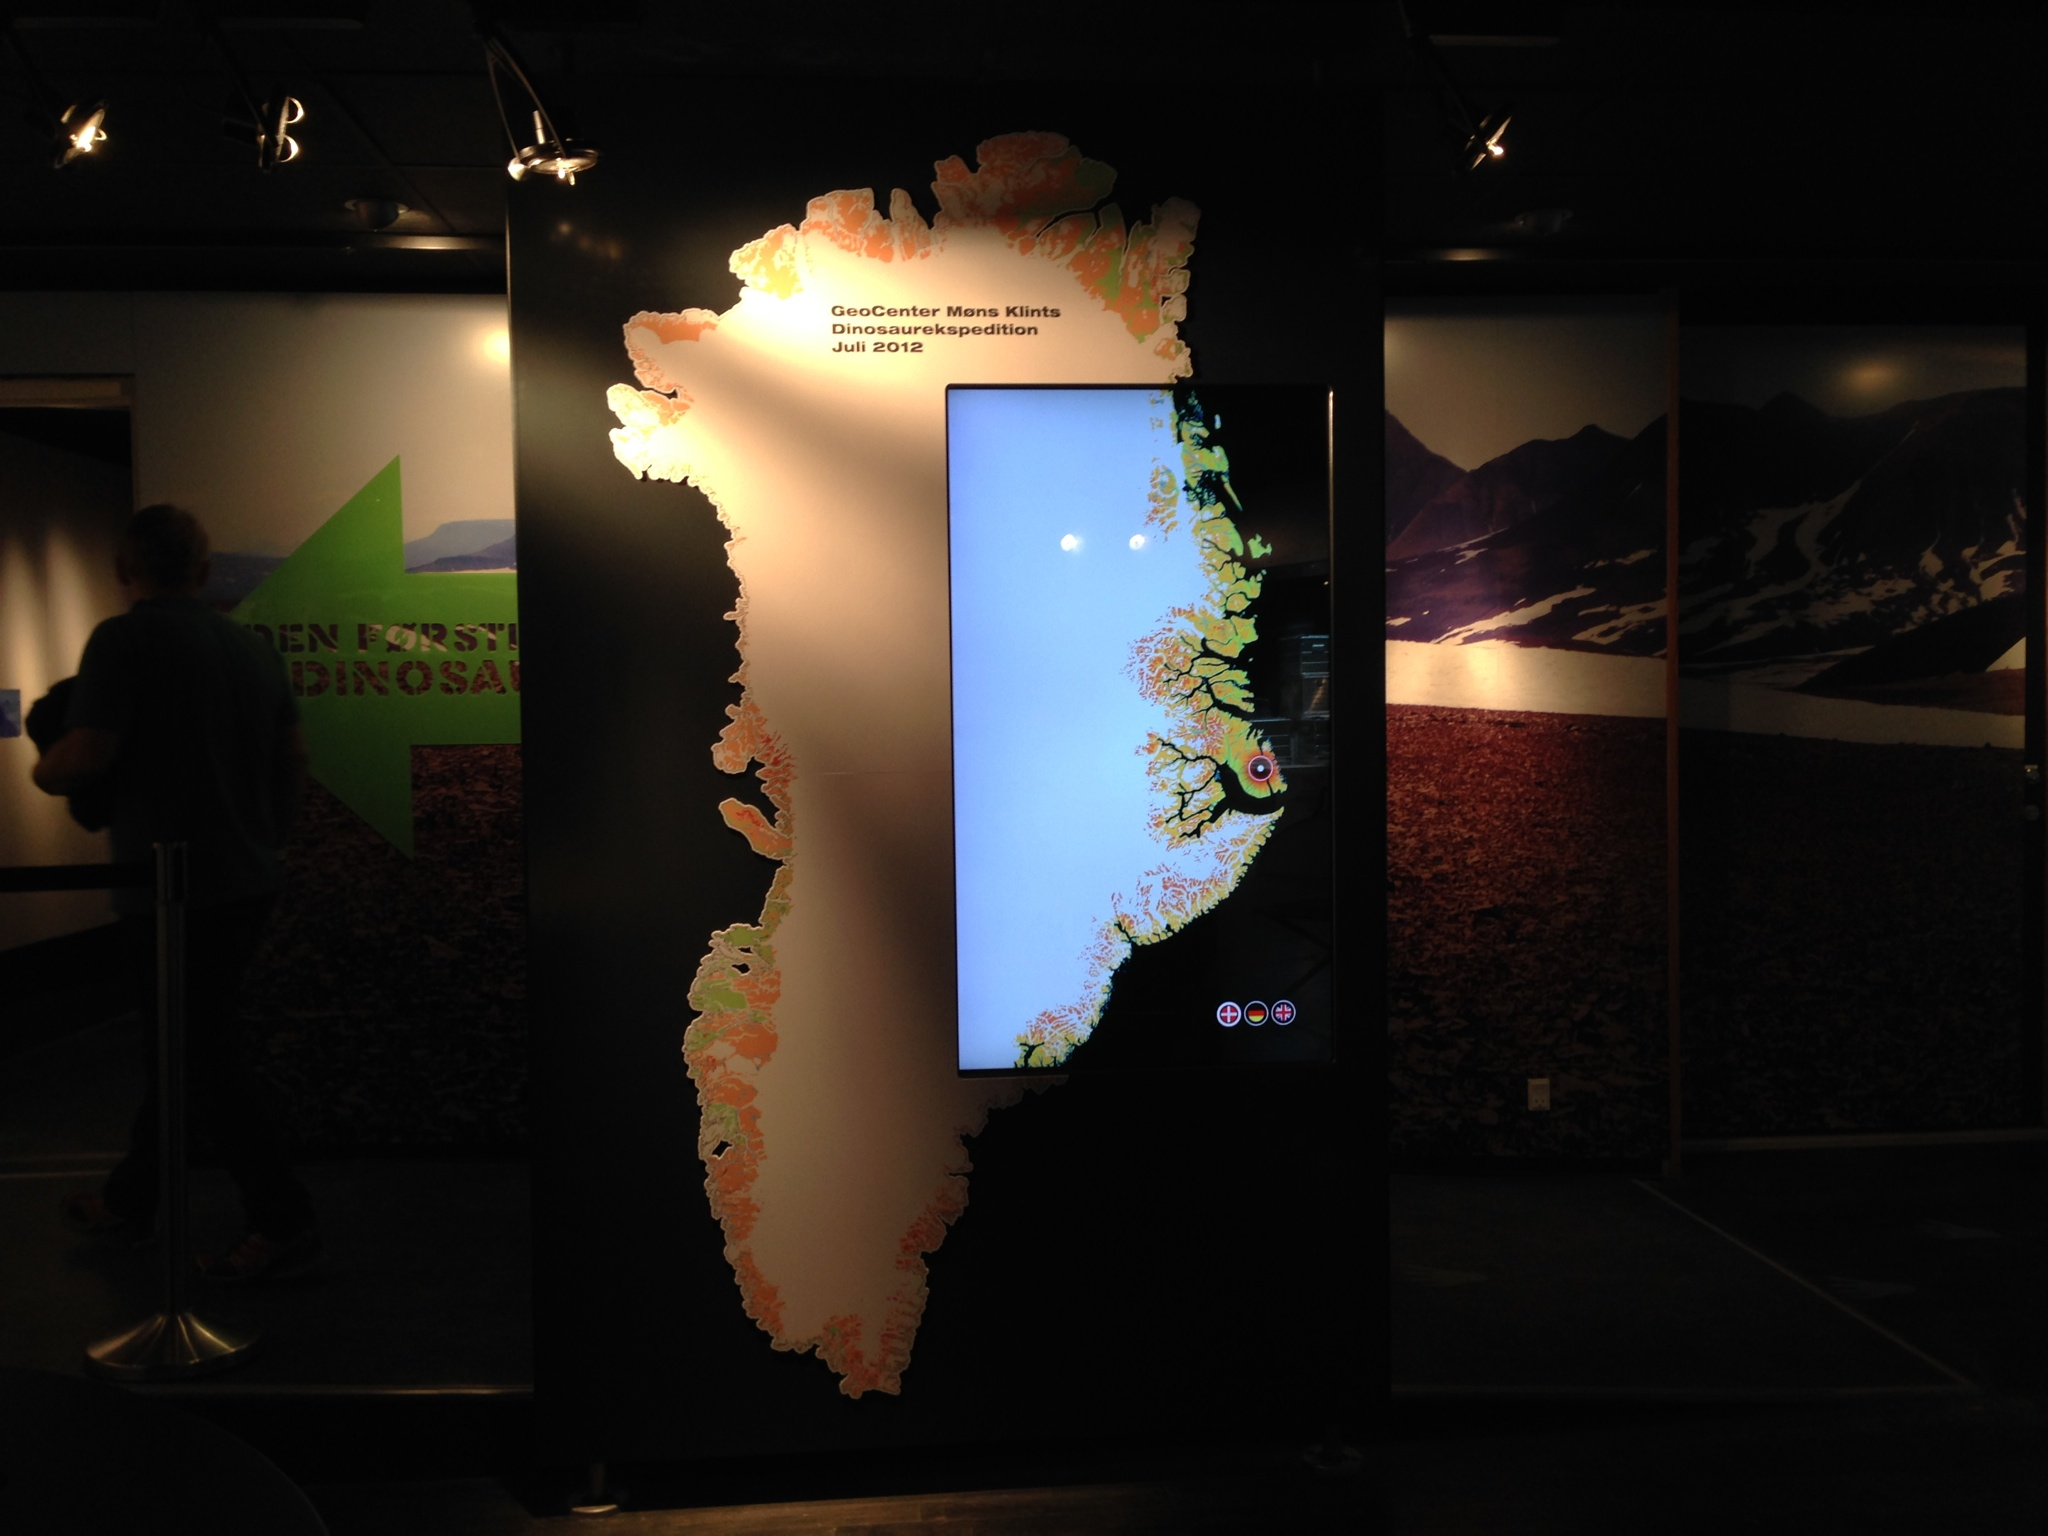 Møns Klint Special Exihibition – The Map